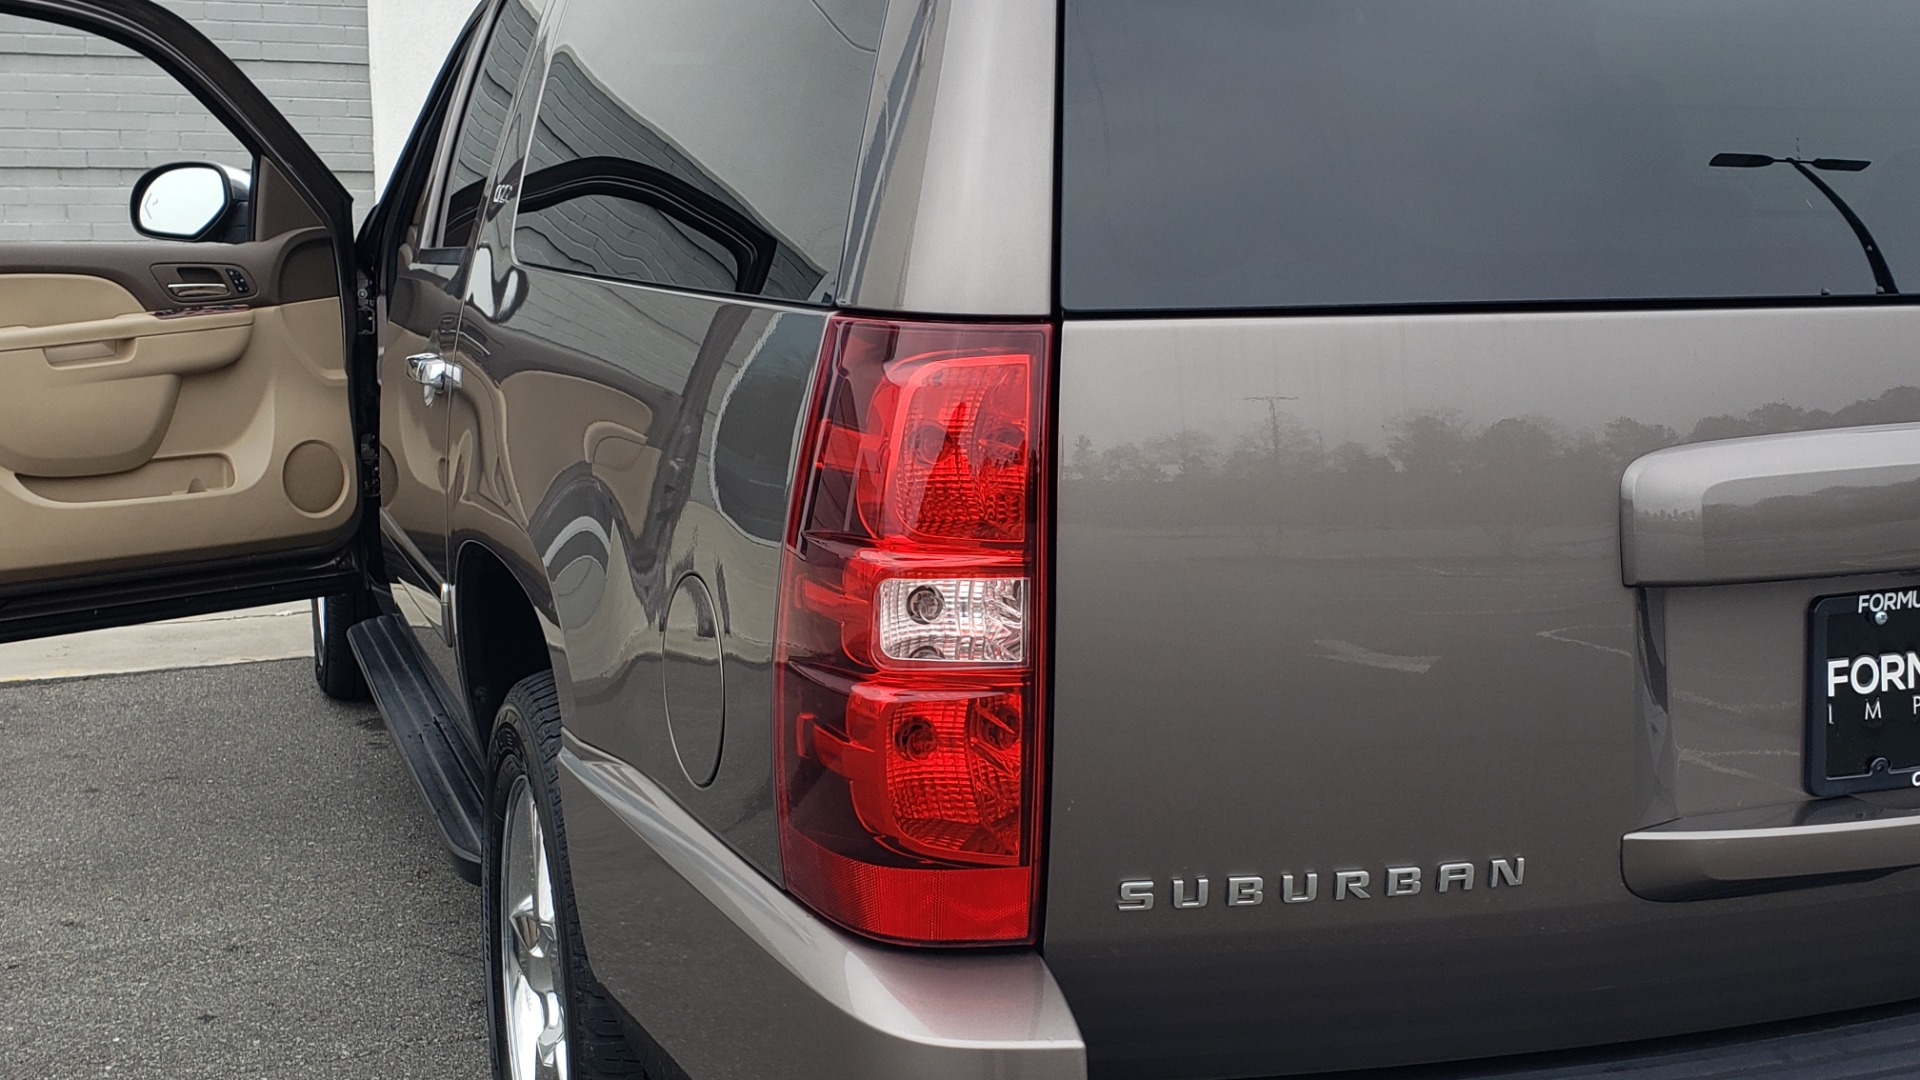 Used 2014 Chevrolet SUBURBAN LTZ / 4WD / ENTERTAINMENT / NAV / SUNROOF / TRAILER PKG for sale Sold at Formula Imports in Charlotte NC 28227 28